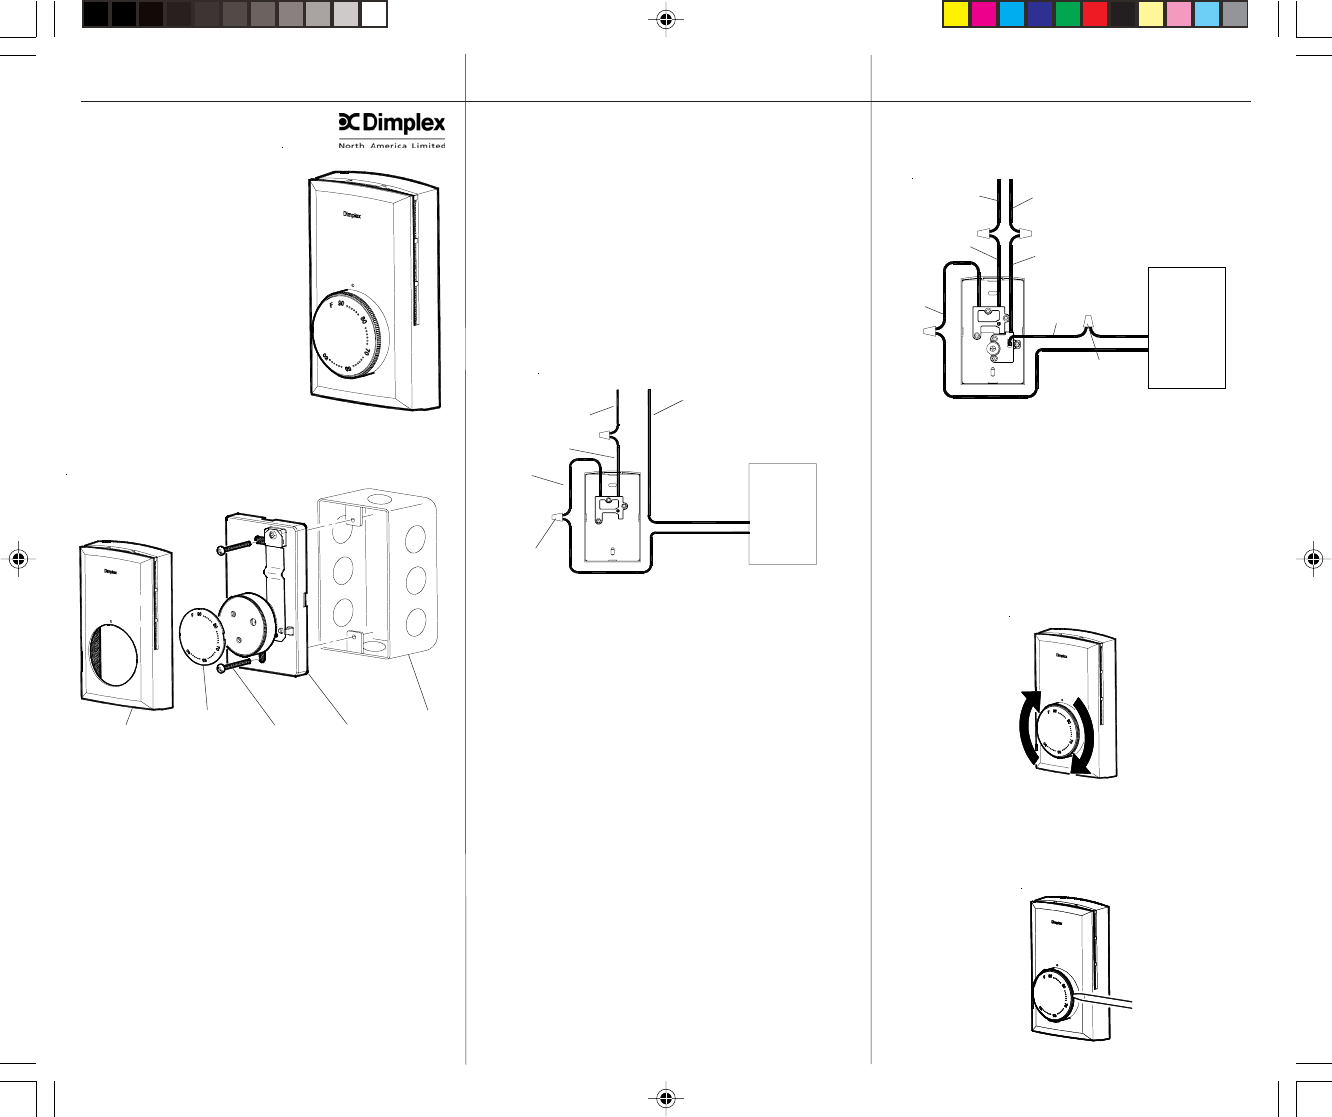 OR8t 9800 further Square D Contactor Wiring Diagram further GG1r 16096 likewise Index furthermore Heil Furnace Wiring Diagram. on honeywell home thermostat wiring diagram